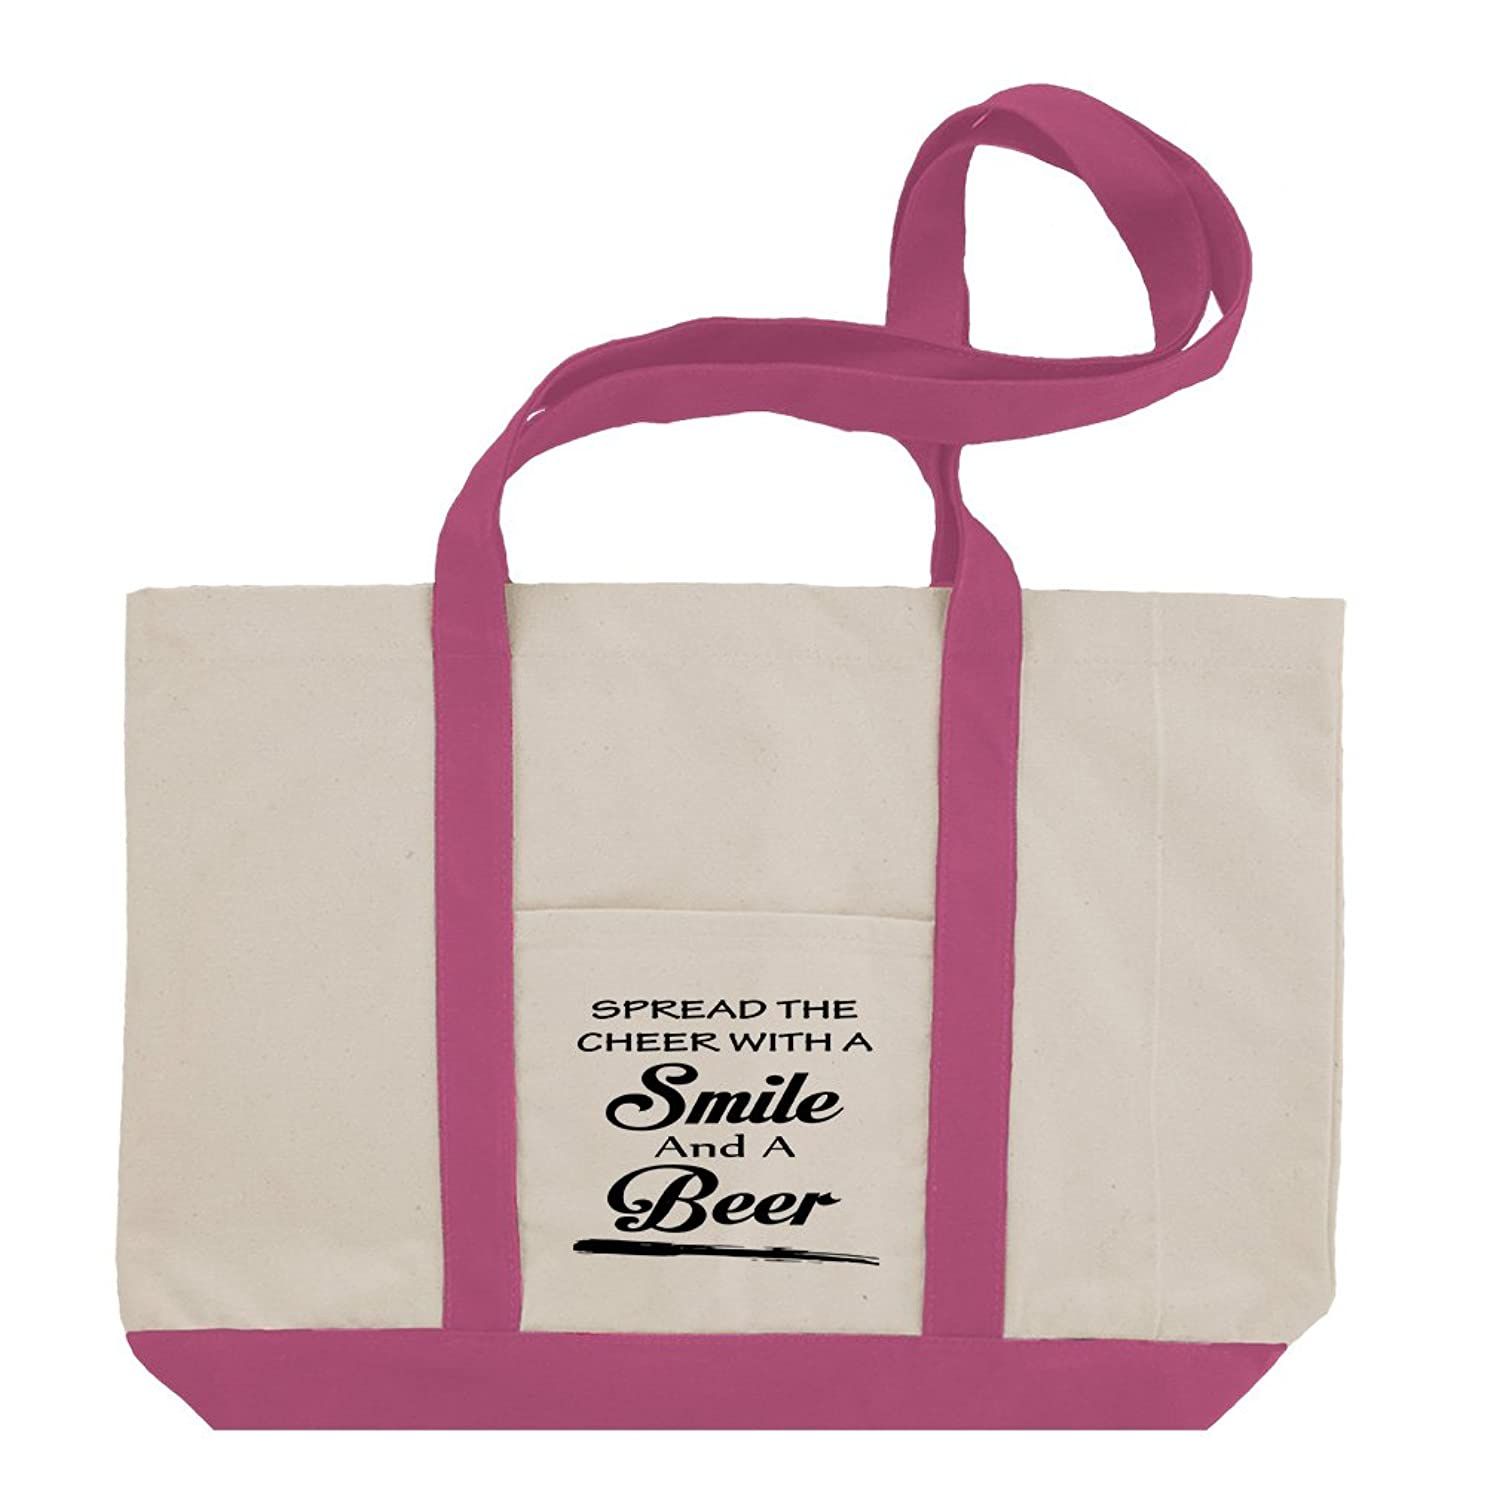 Spread The Cheer With A Smile And A Beer Cotton Canvas Boat Tote Bag Tote